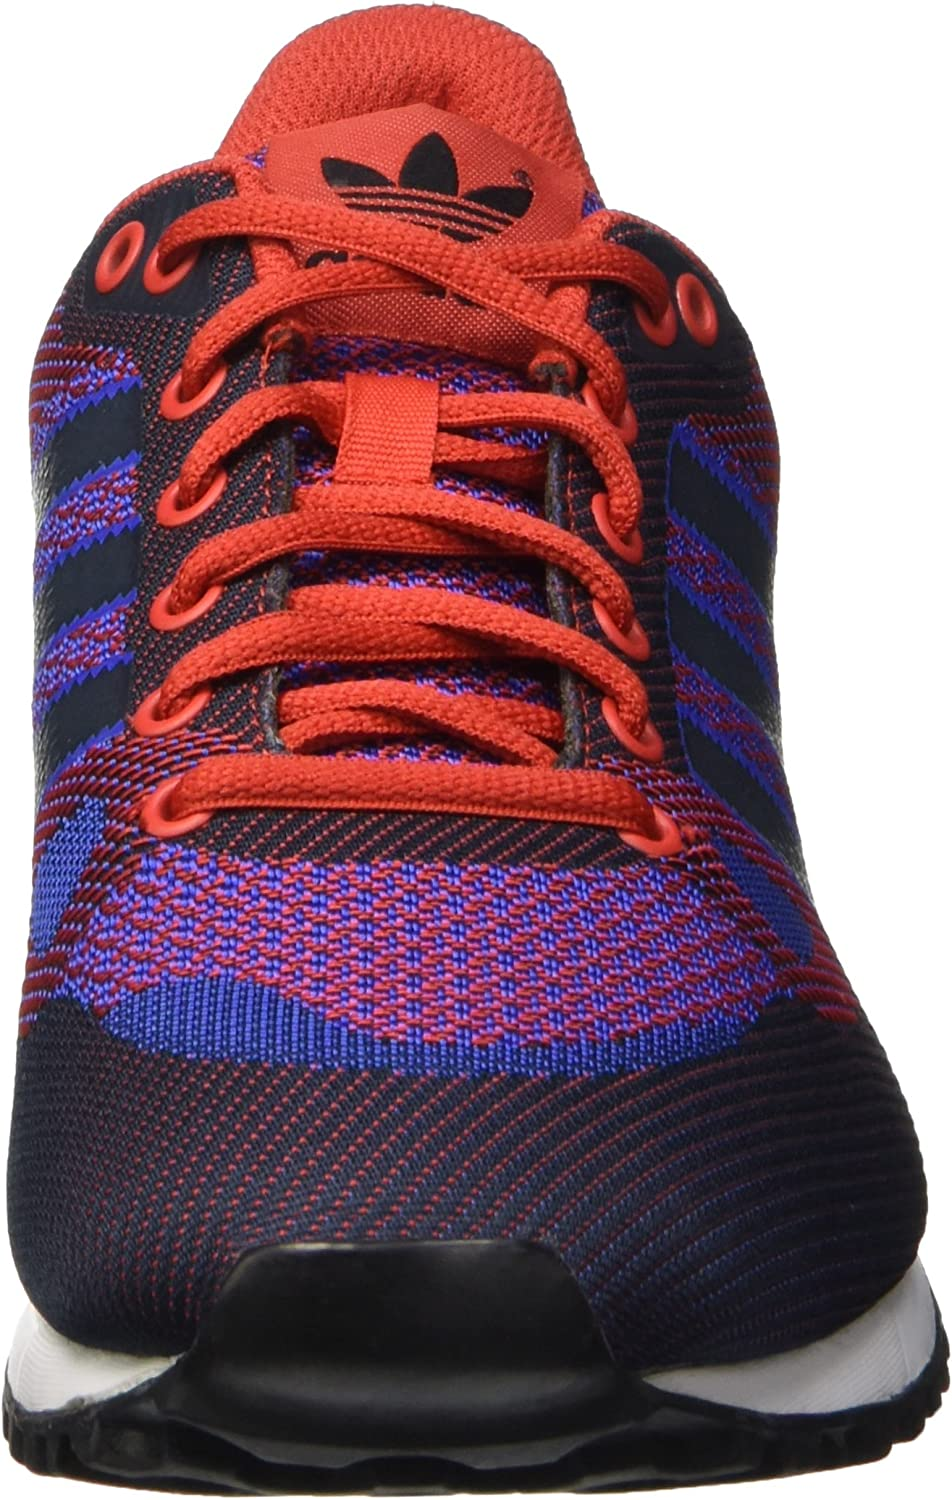 adidas Men's Zx 750 Wv Fitness Shoes